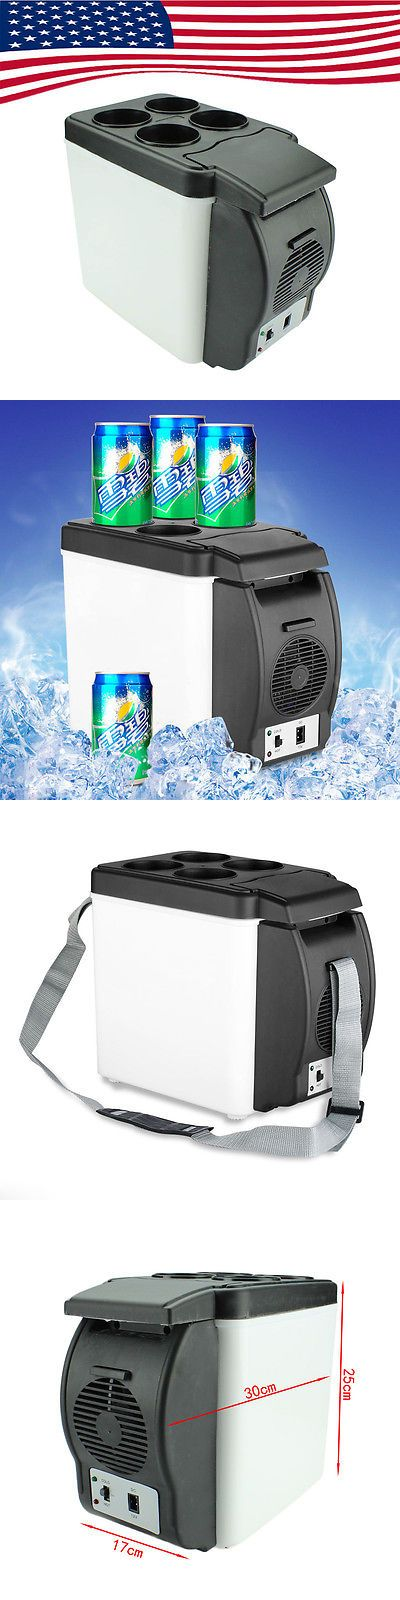 12-Volt Portable Appliances: 12V 6L Thermoelectric Portable Car Mini Refrigerator Cooler Warmer Travel Fridge BUY IT NOW ONLY: $49.99